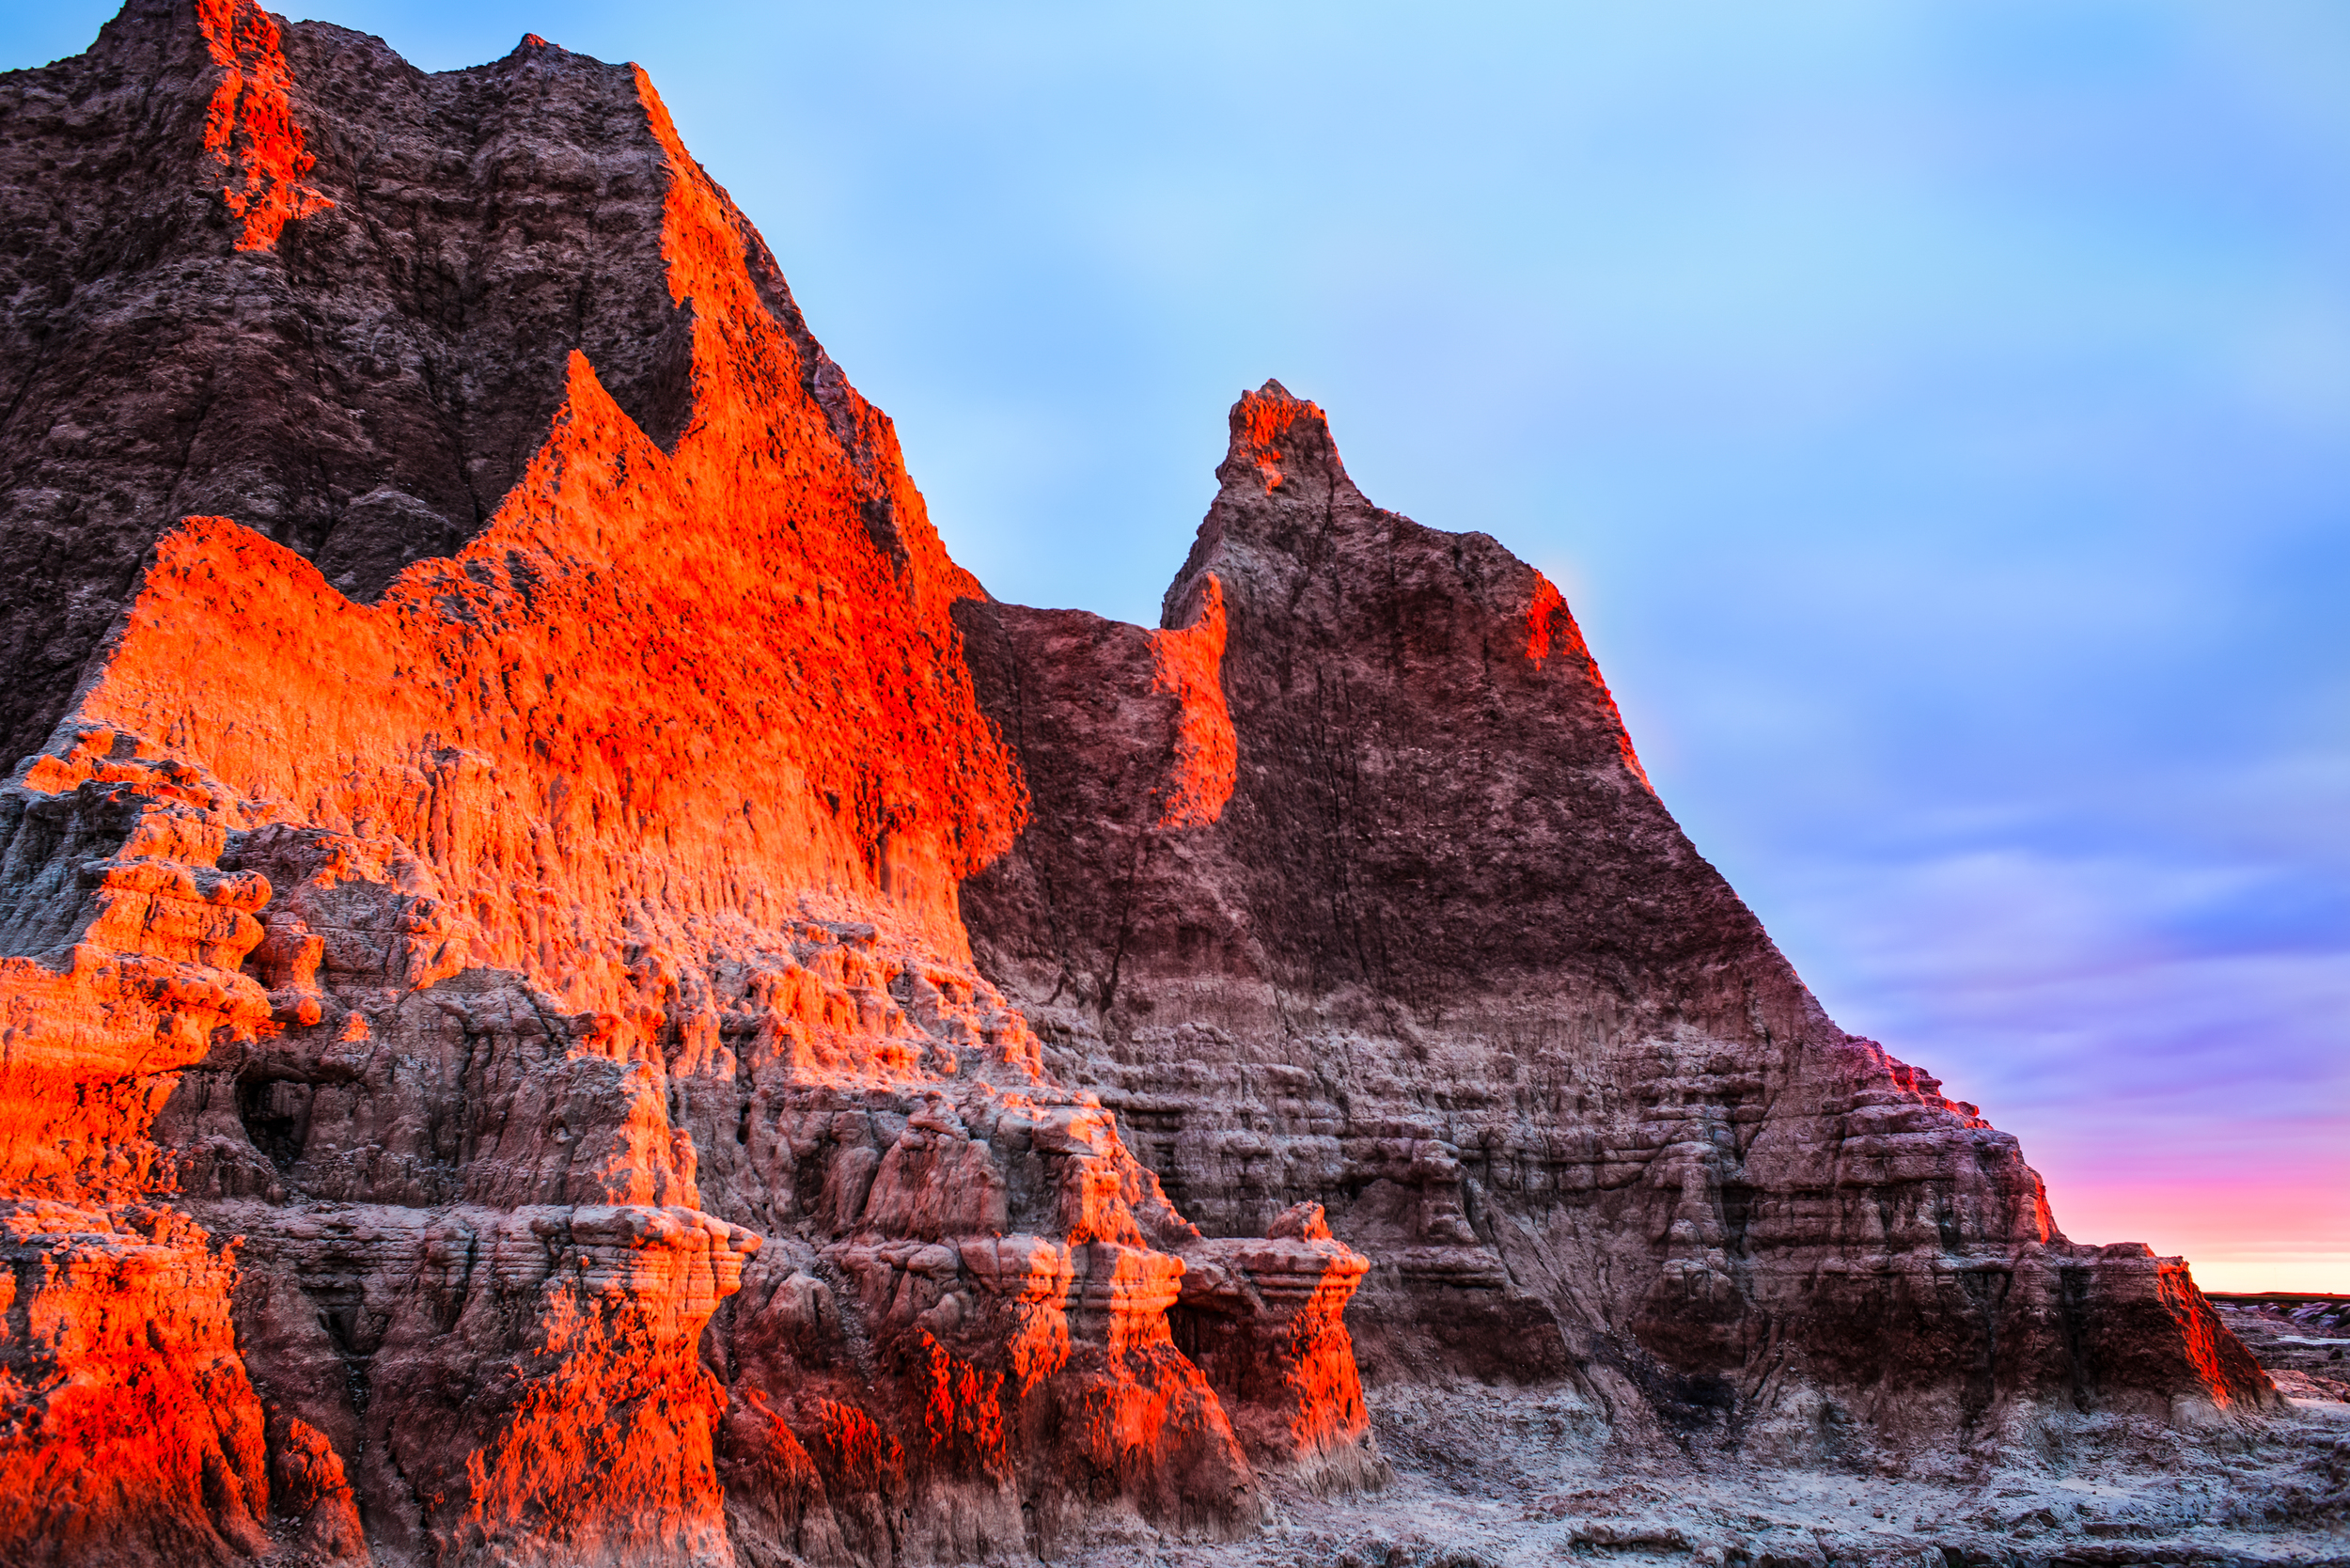 Click Photo to Enlarge | Sunrise at Badlands National Park, South Dakota | © Christy 'Chrysti' Hydeck